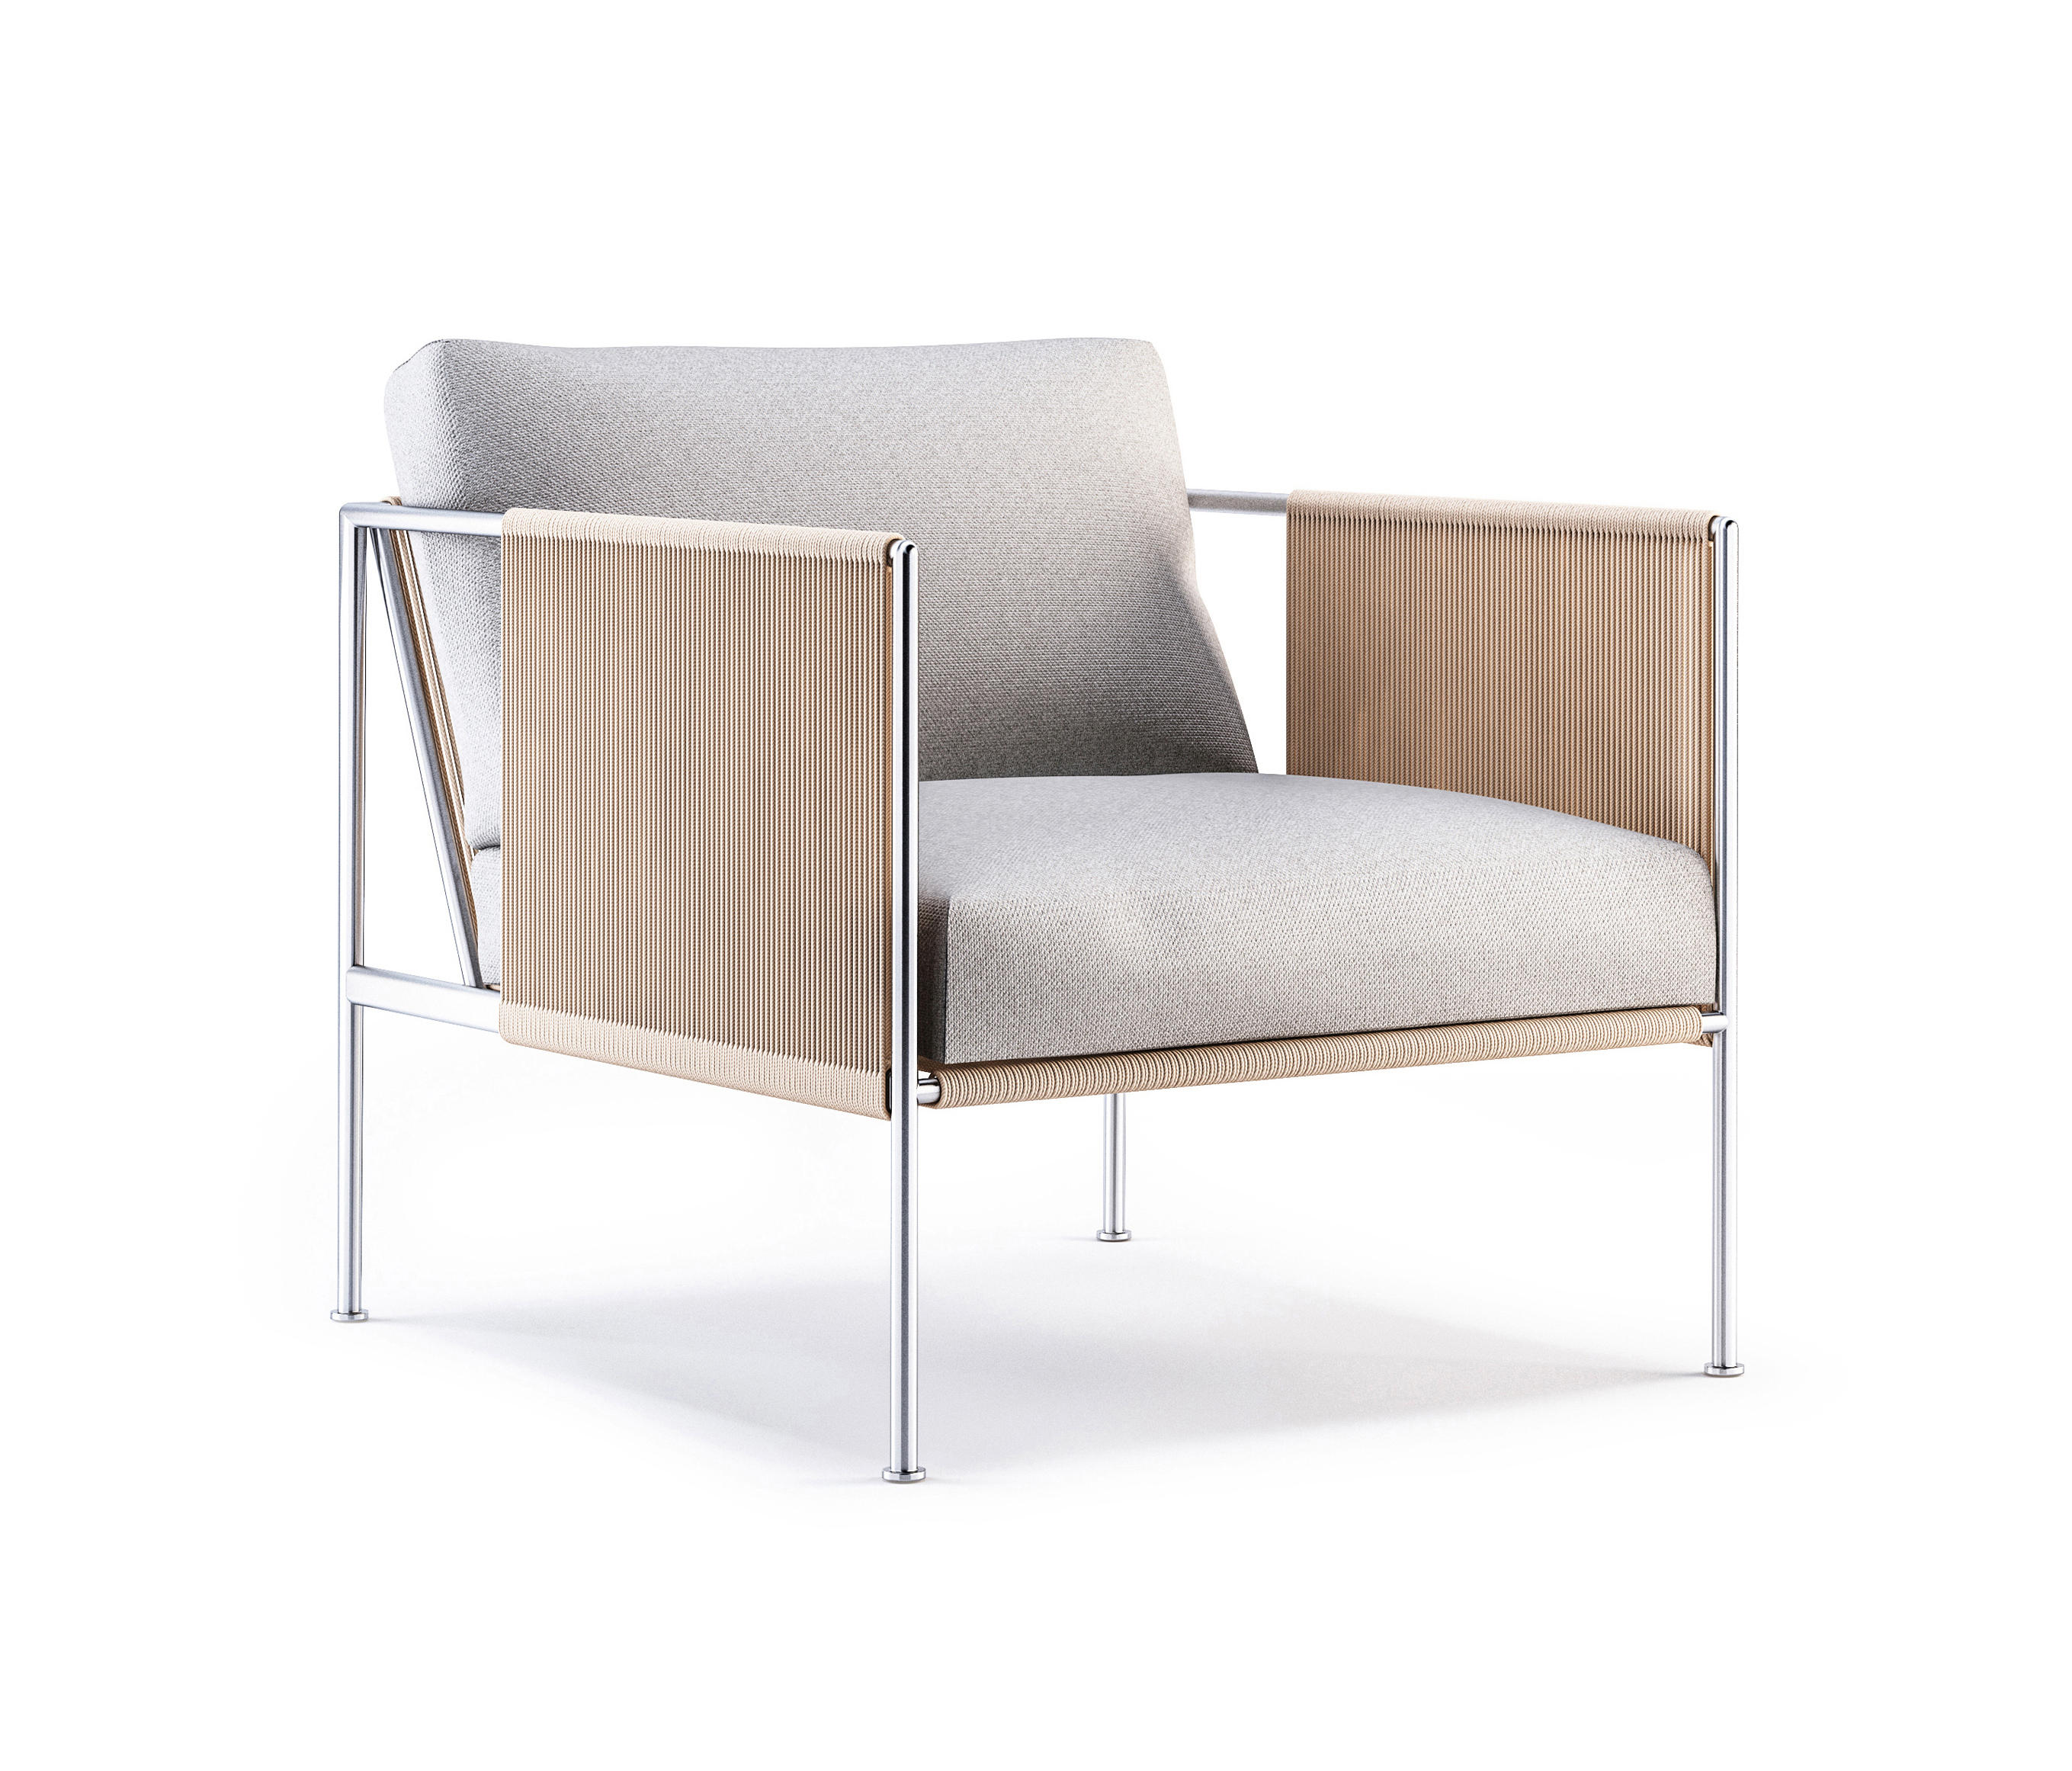 Garden furniture antibes chair by röshults armchairs